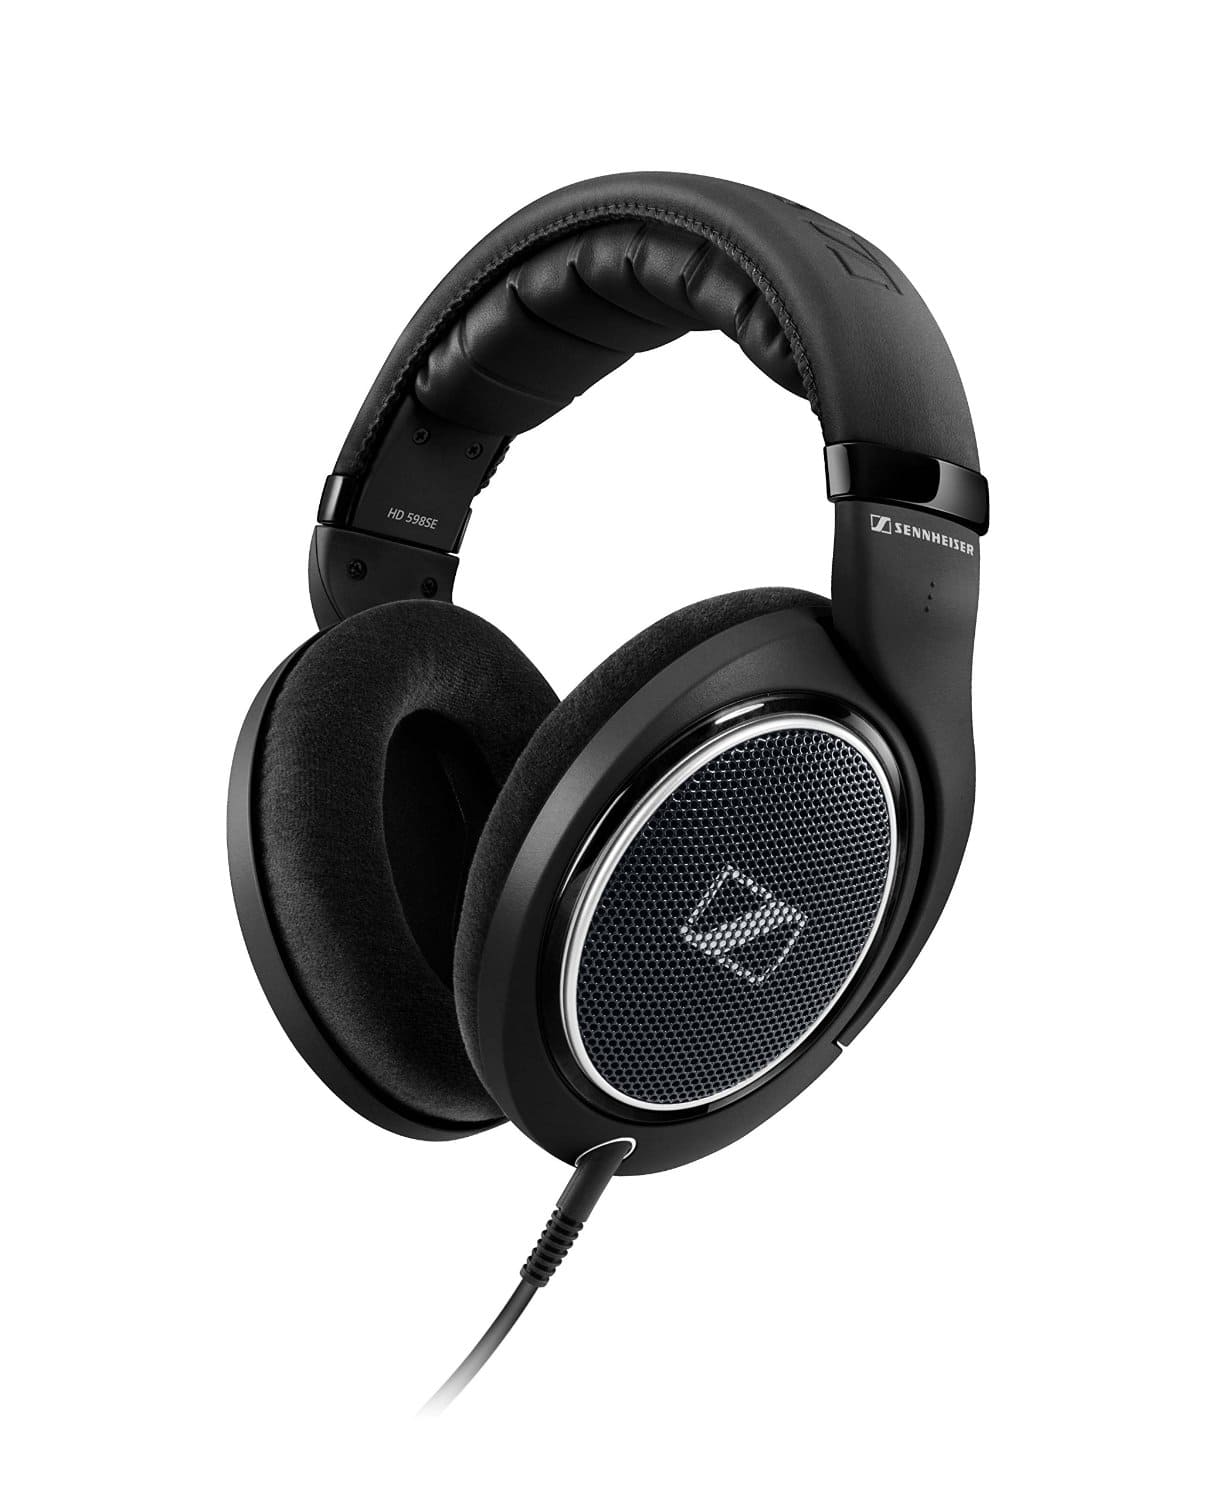 Sennheiser HD 598 Headphones - Amazon Special Edition (Black) - $94.99 - Free Shipping (lowest price ever)